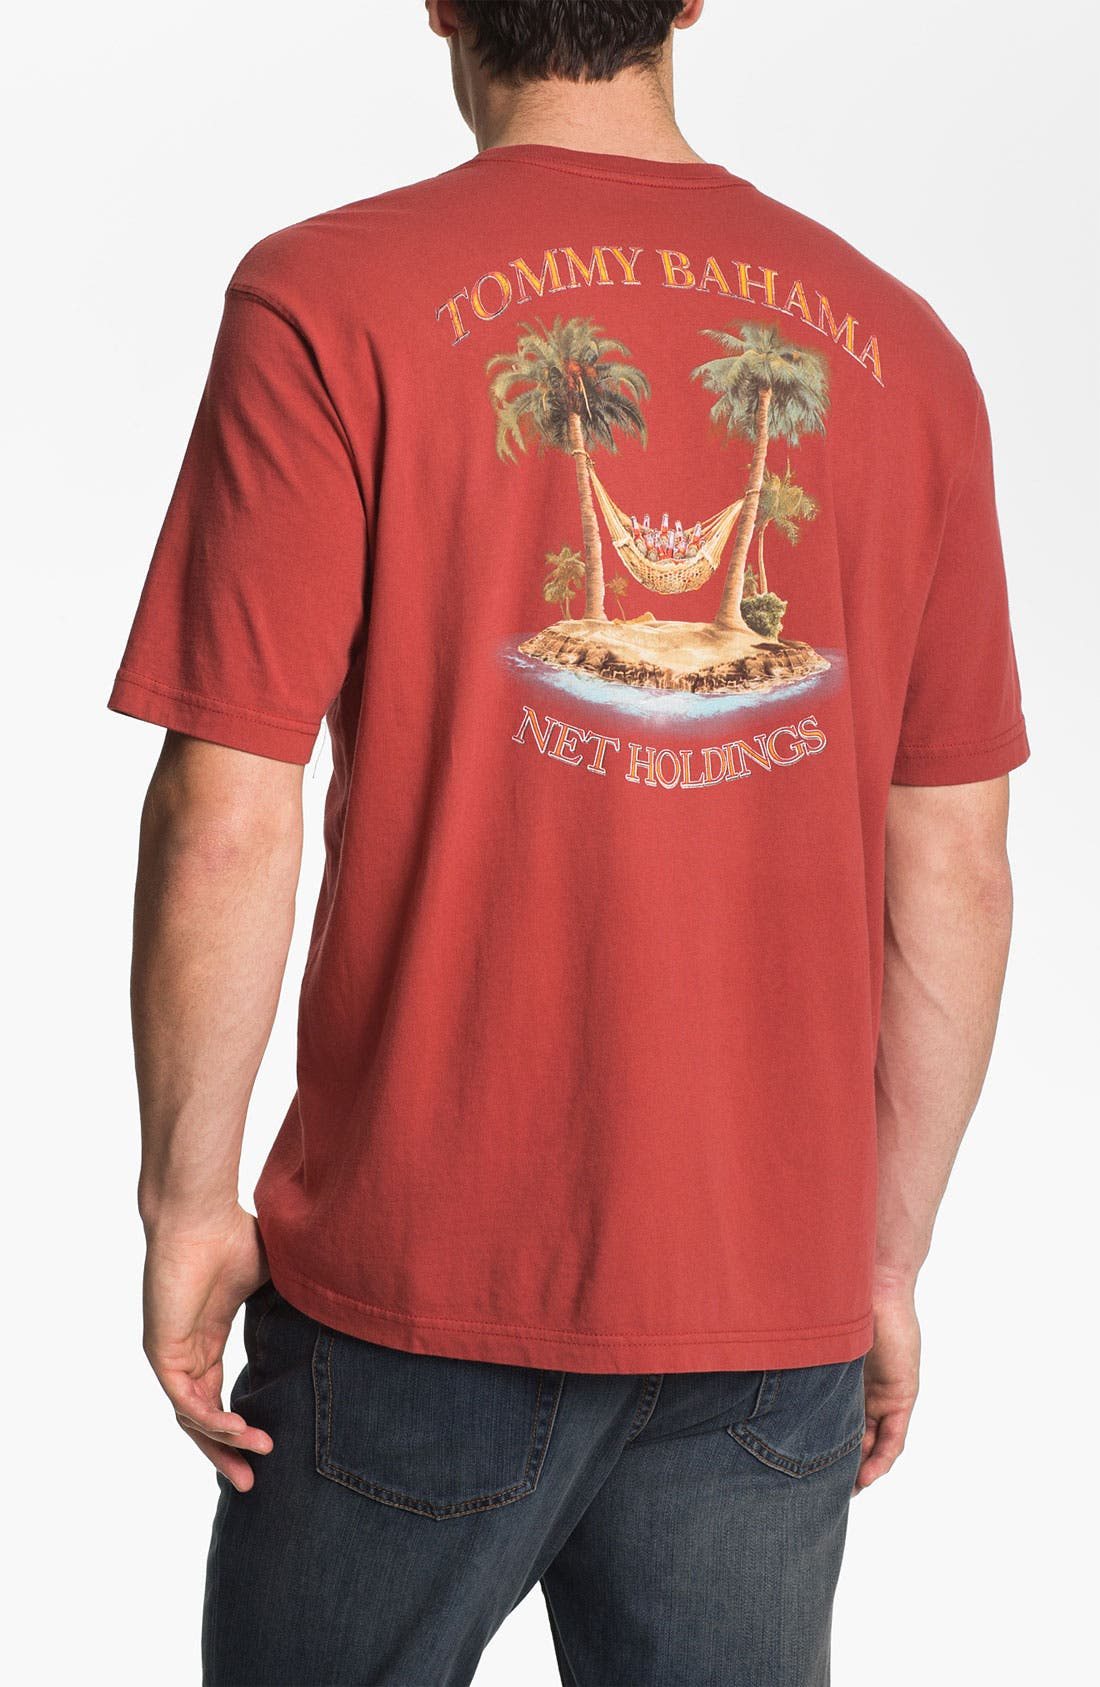 Alternate Image 1 Selected - Tommy Bahama 'Net Holdings' T-Shirt